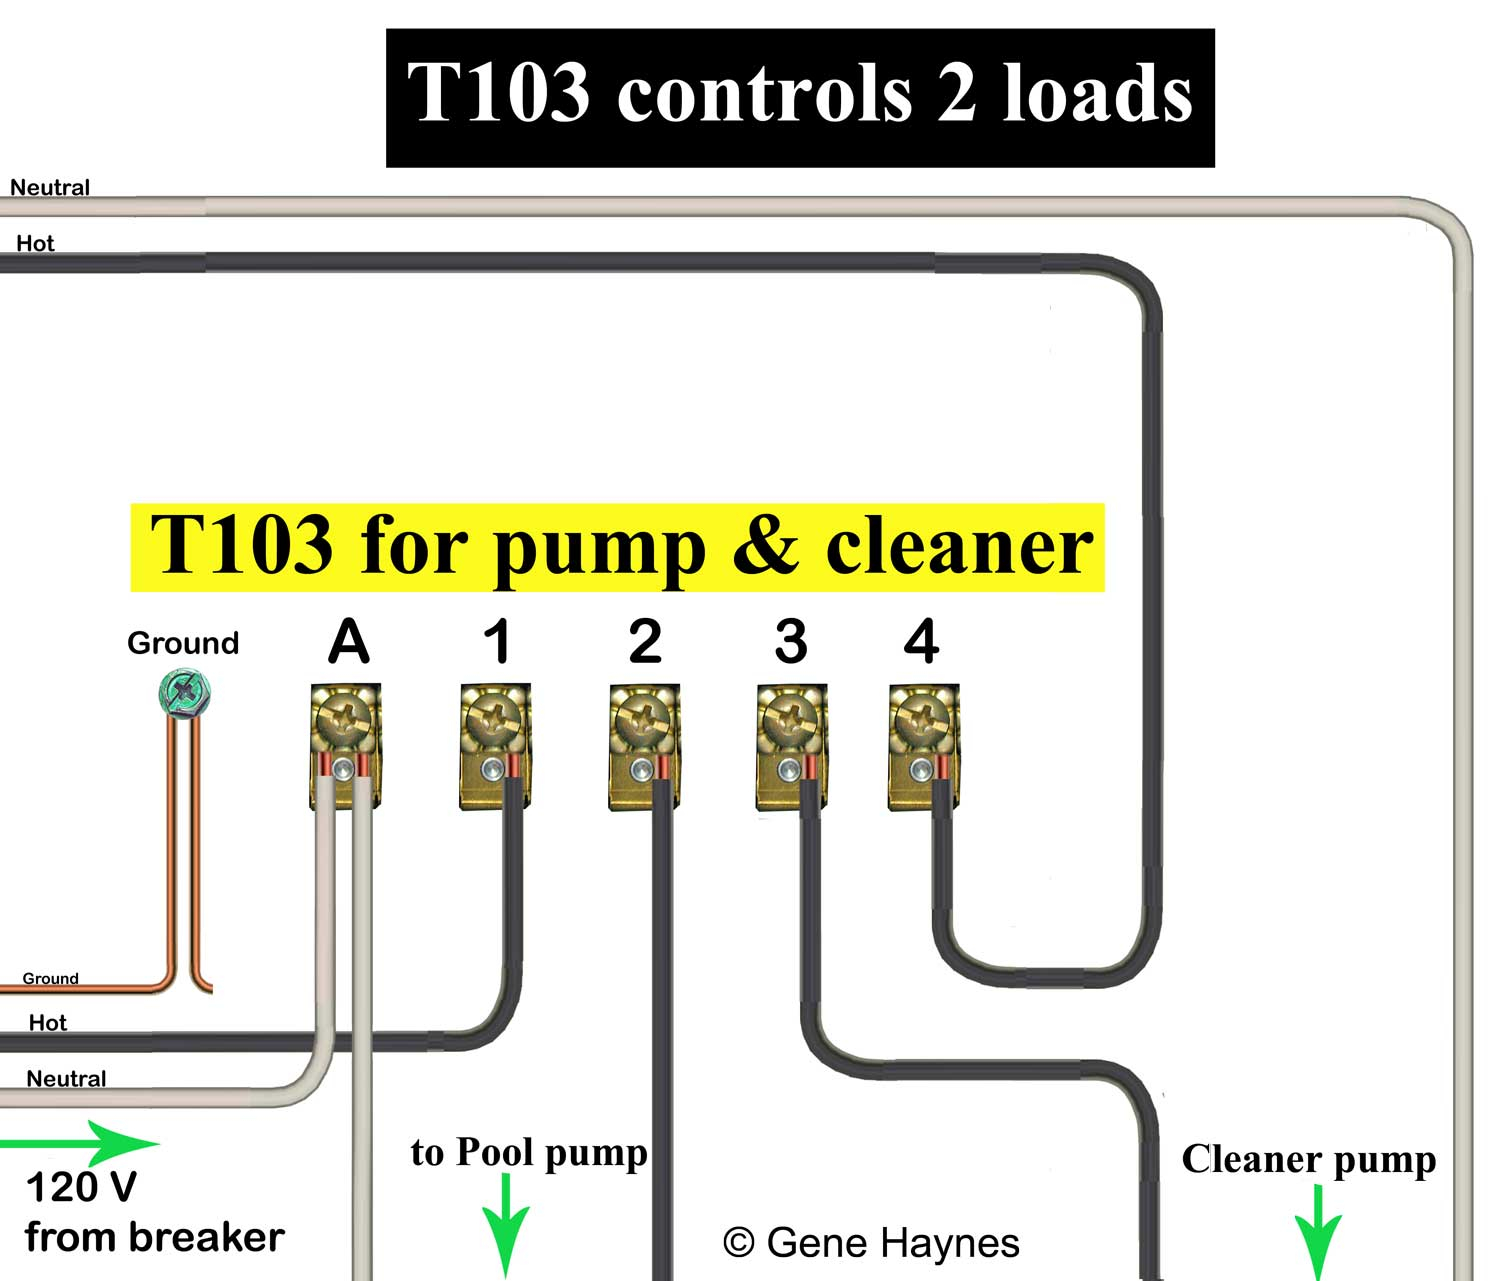 intermatic st01 wiring diagram Download-Intermatic Pool Timer Wiring Diagram Best How to Wire T103 Timer New Intermatic Pool Wiring Diagram 15-d